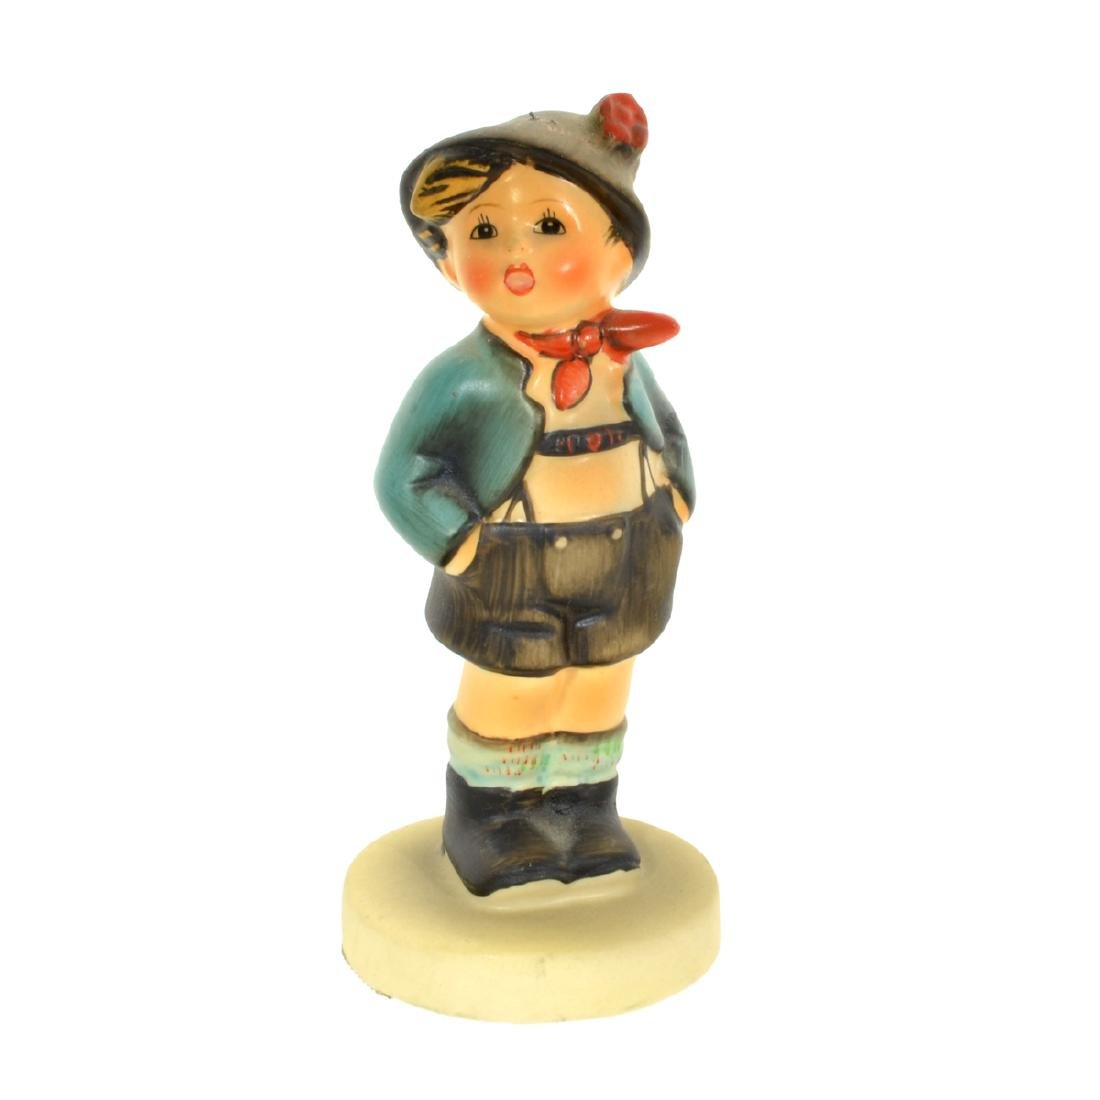 Porcelain Alpine Boy Figurine